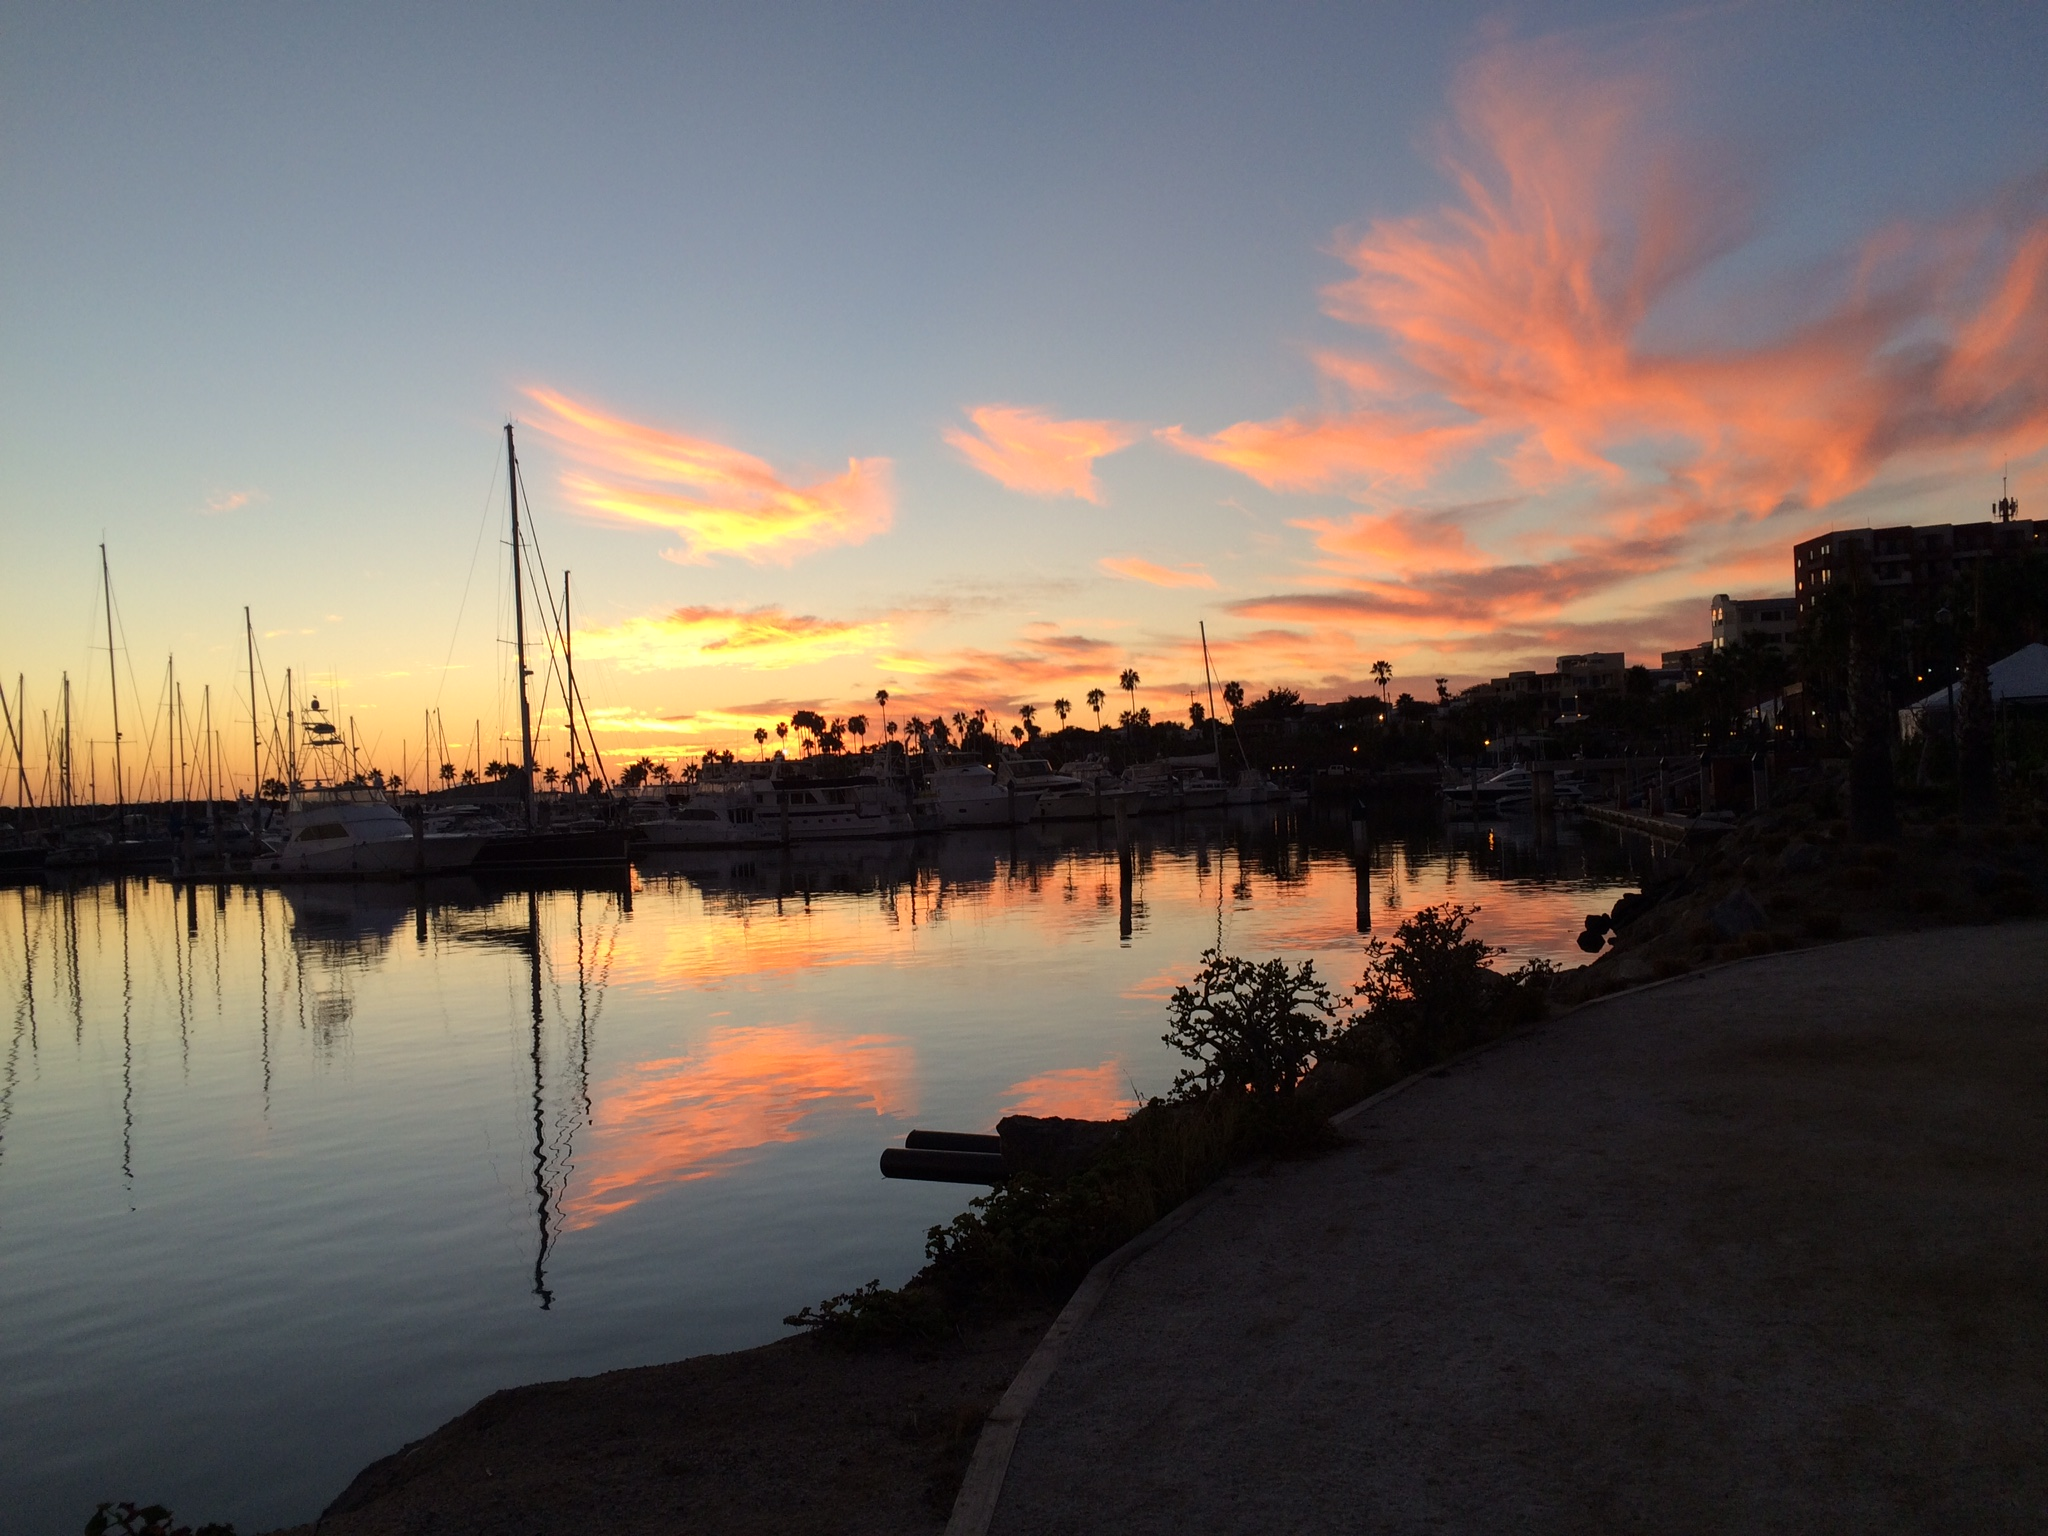 A view of the sunset from Ensenada is a perk for visitors who stay at the Hotel Coral, just north of the town, about 60 miles south of San Diego. Photo by E'louise Ondash